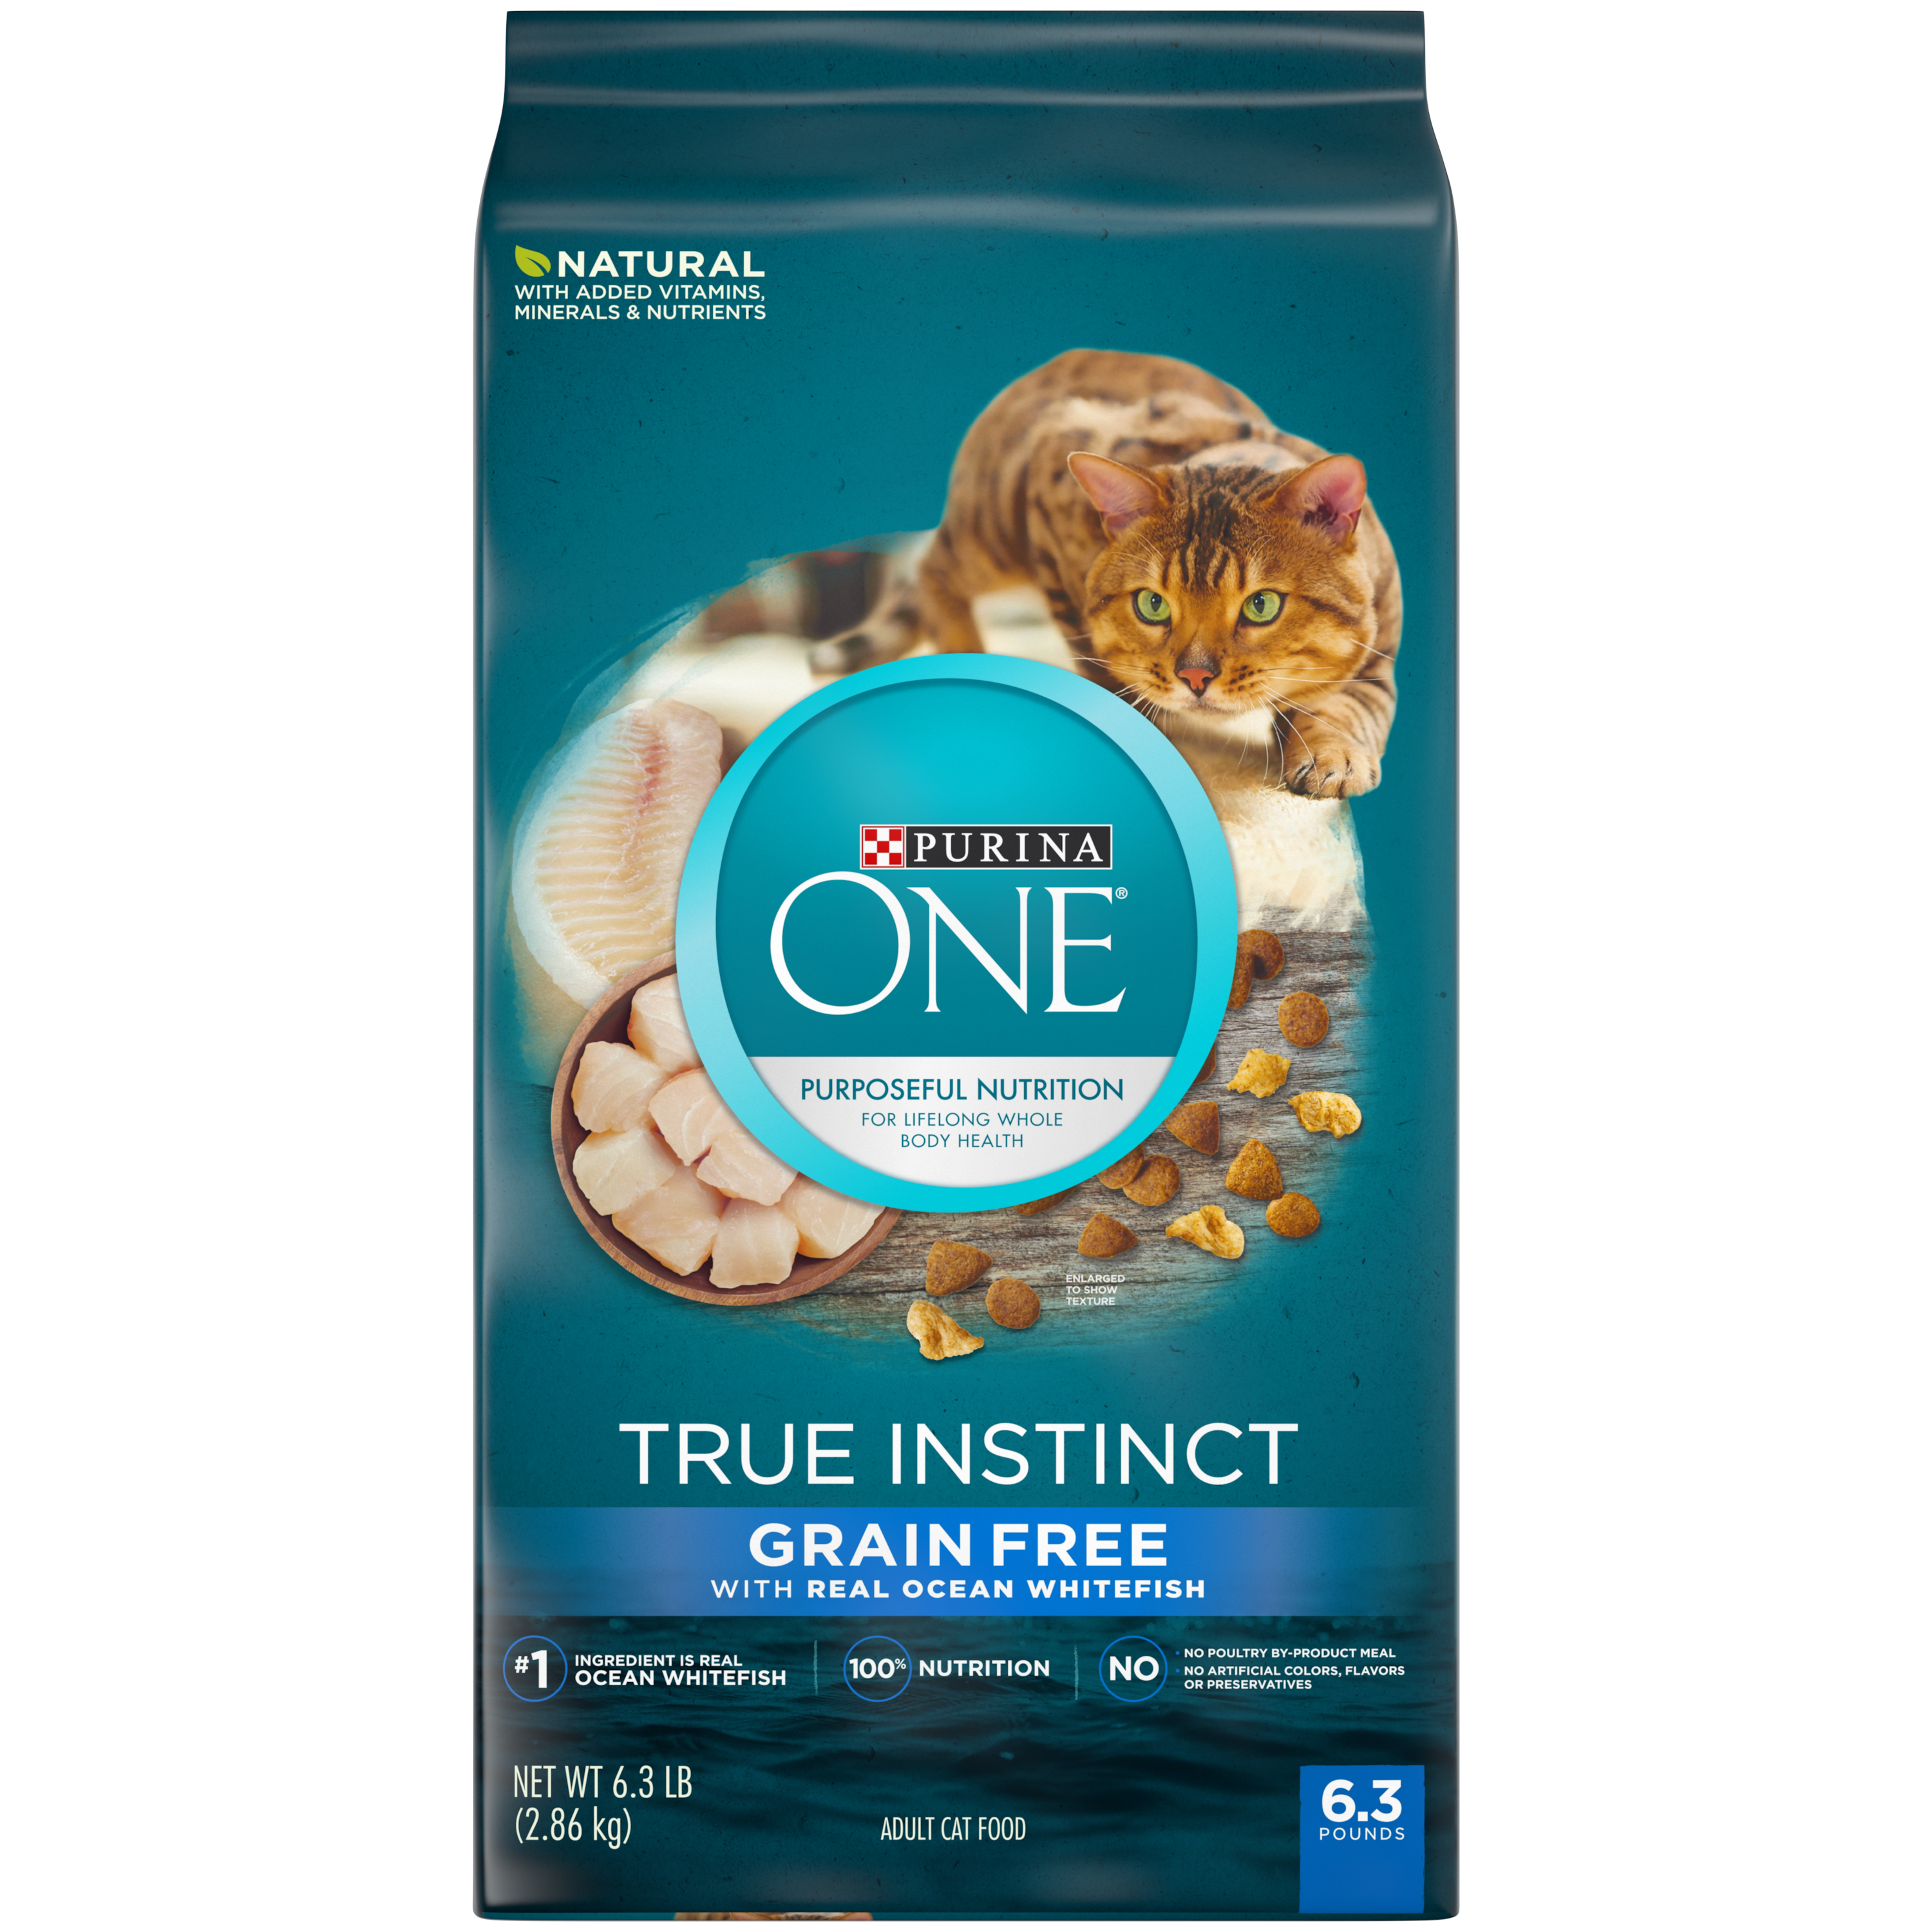 Purina ONE Natural, High Protein, Grain Free Dry Cat Food; True Instinct With Real Ocean Whitefish - 6.3 lb. Bag